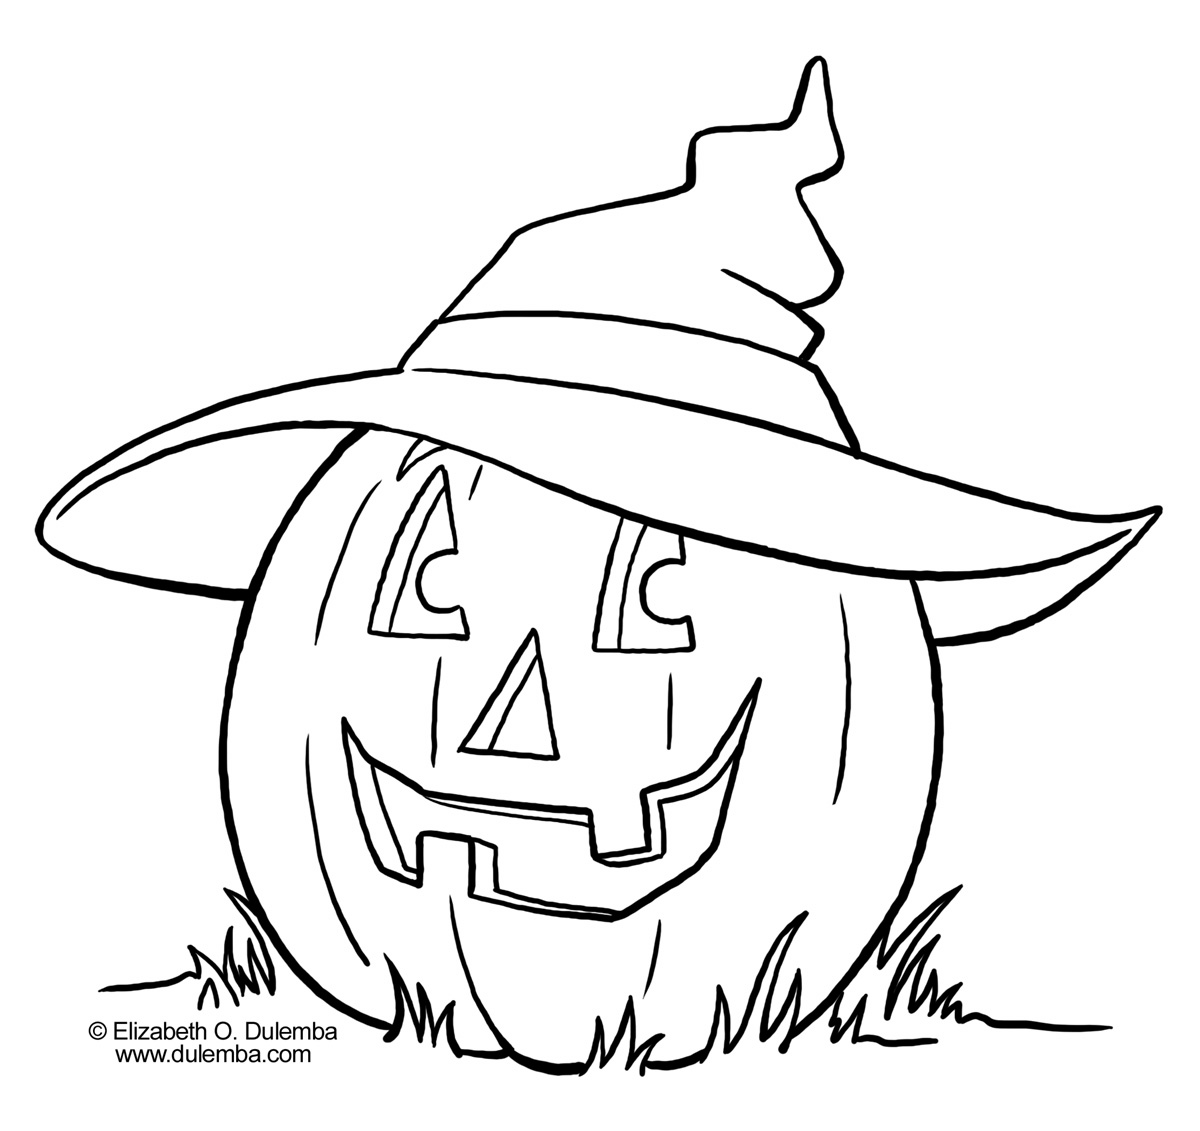 free halloween printable coloring pages coloring pages pumpkin coloring pages collections 2011 free coloring halloween pages printable